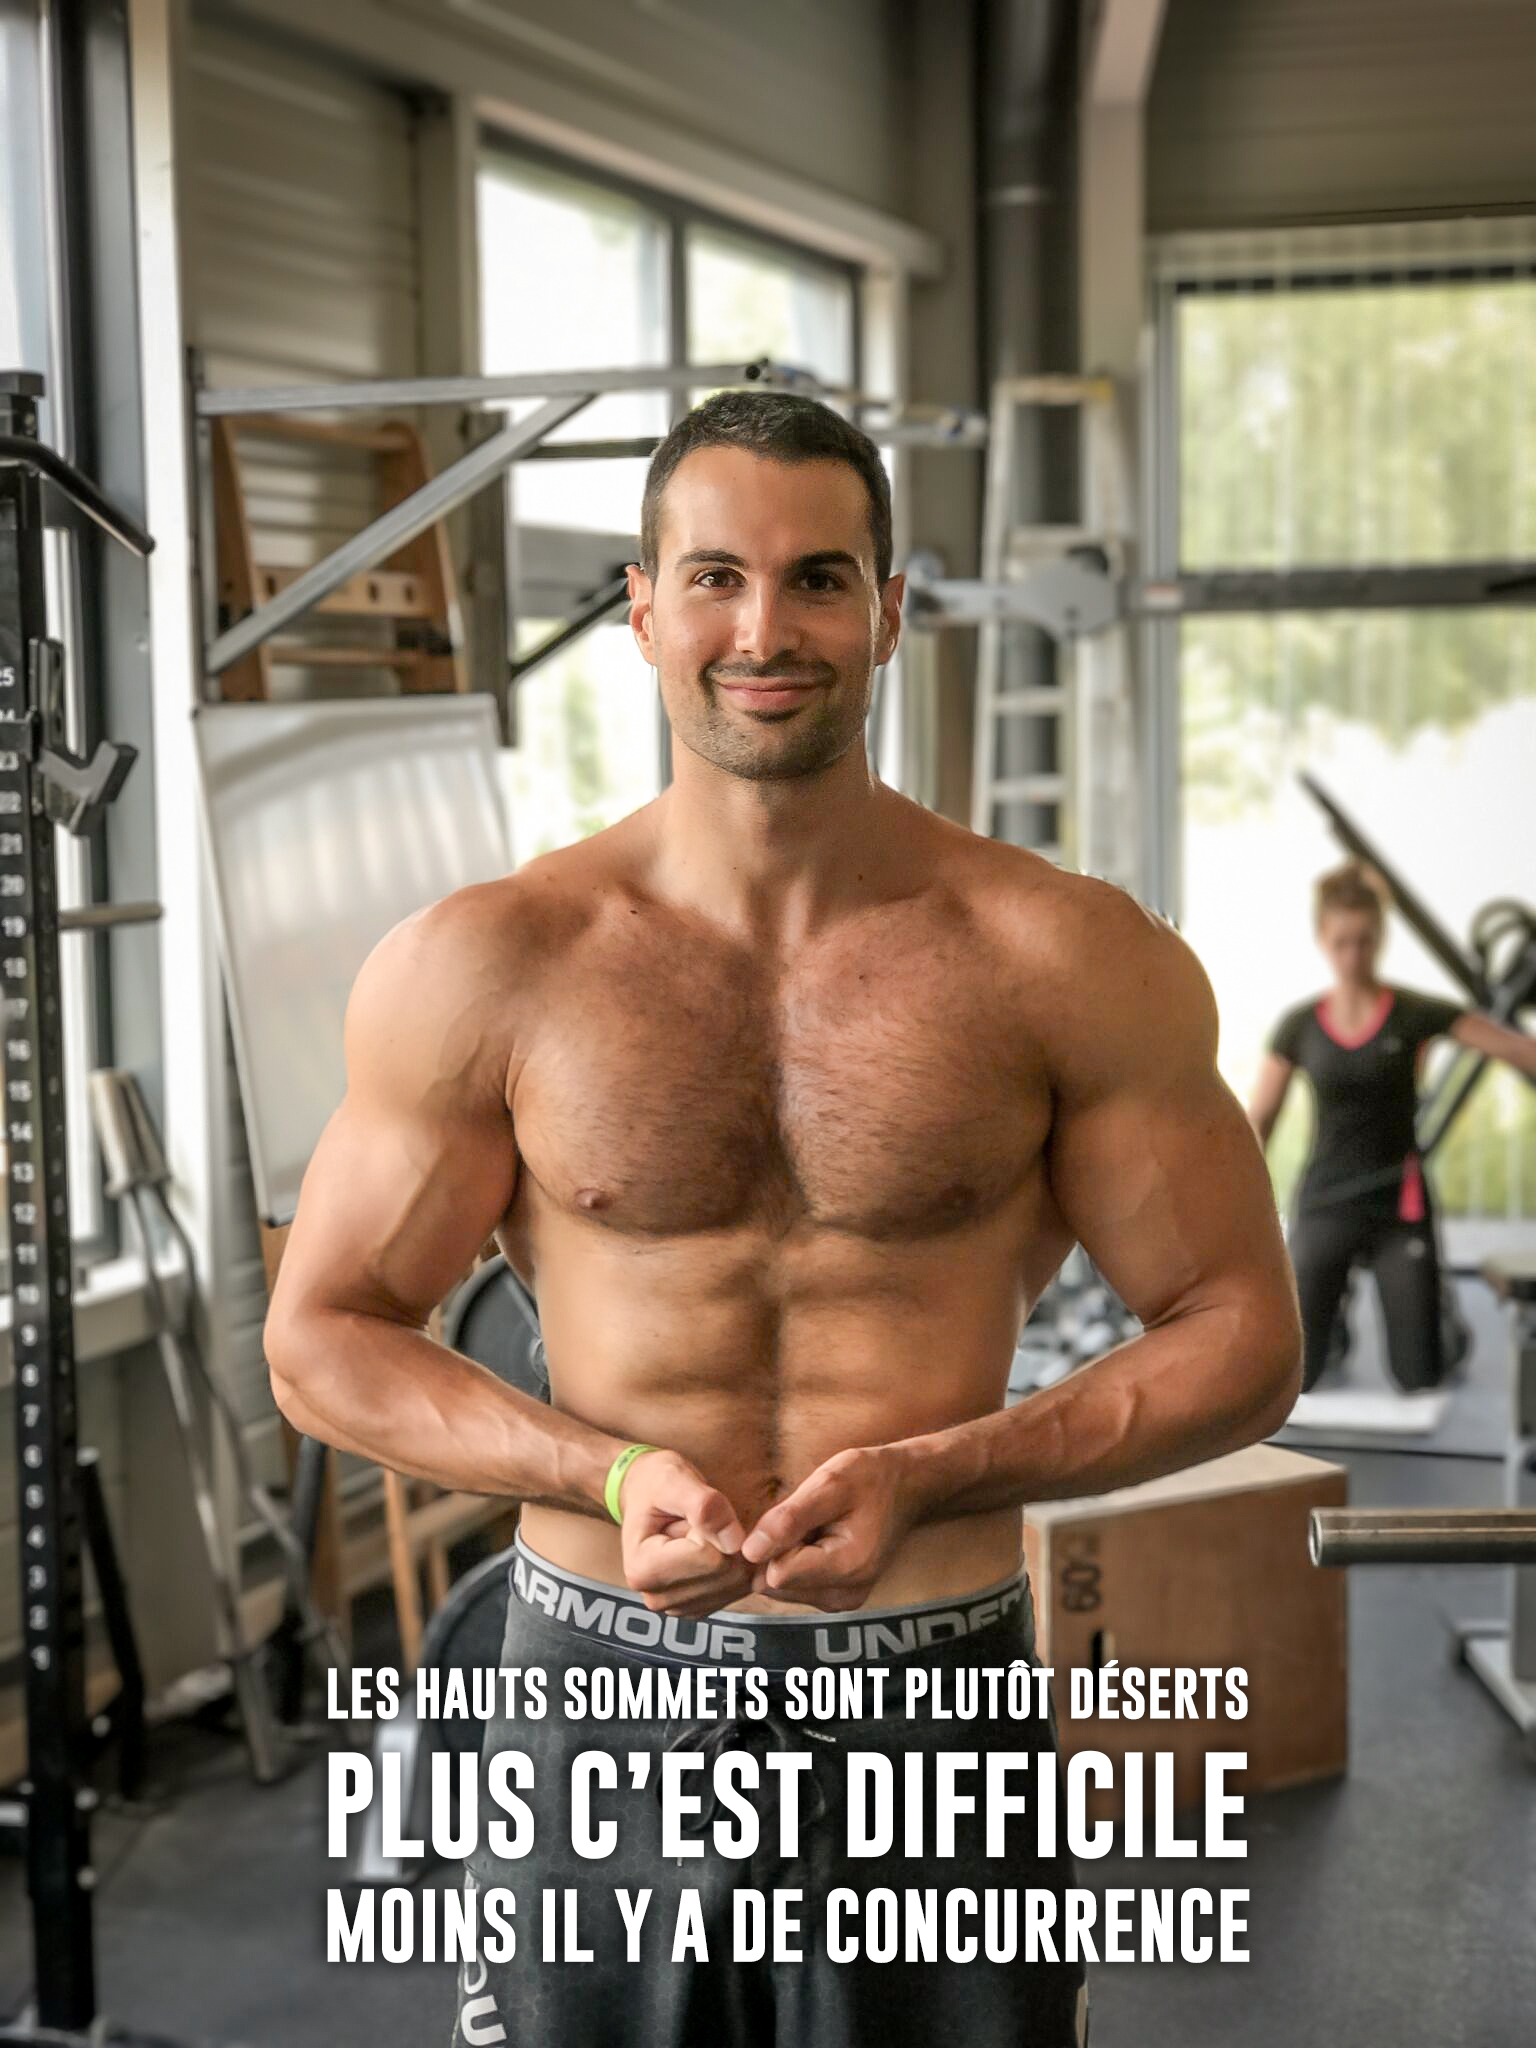 Cycle de progression et nombre d'exercices par muscle